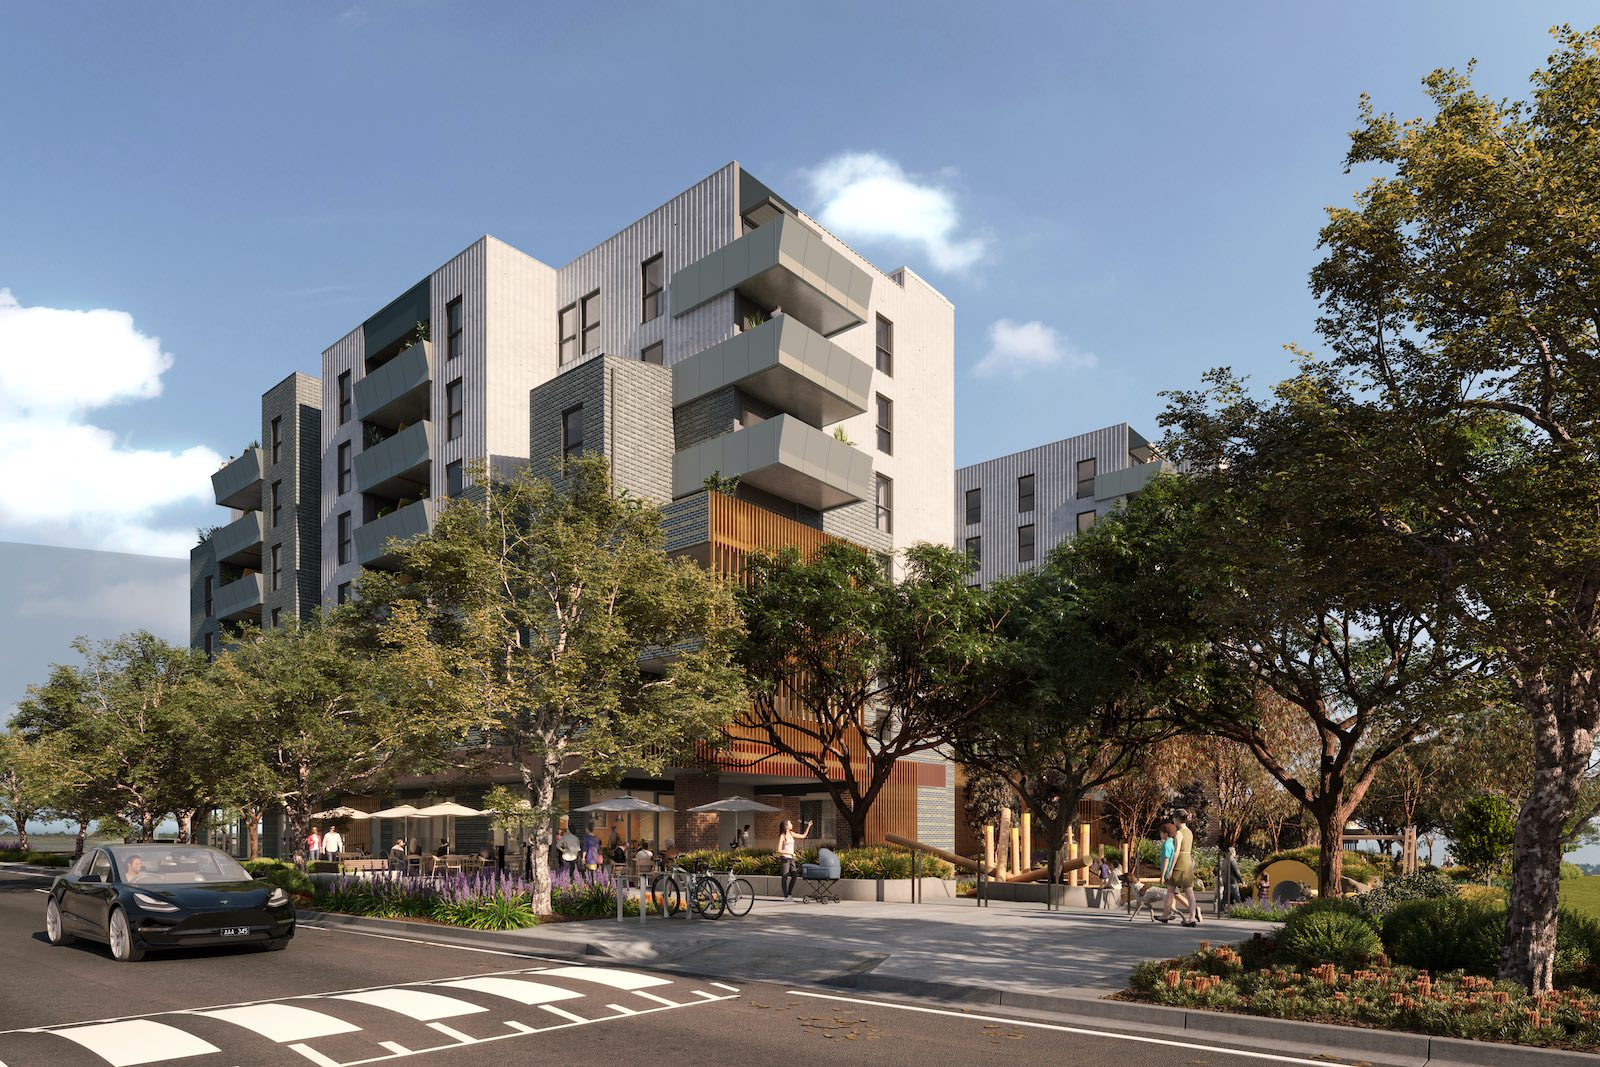 Construction begins at Riverlee's $2 billion New Epping community